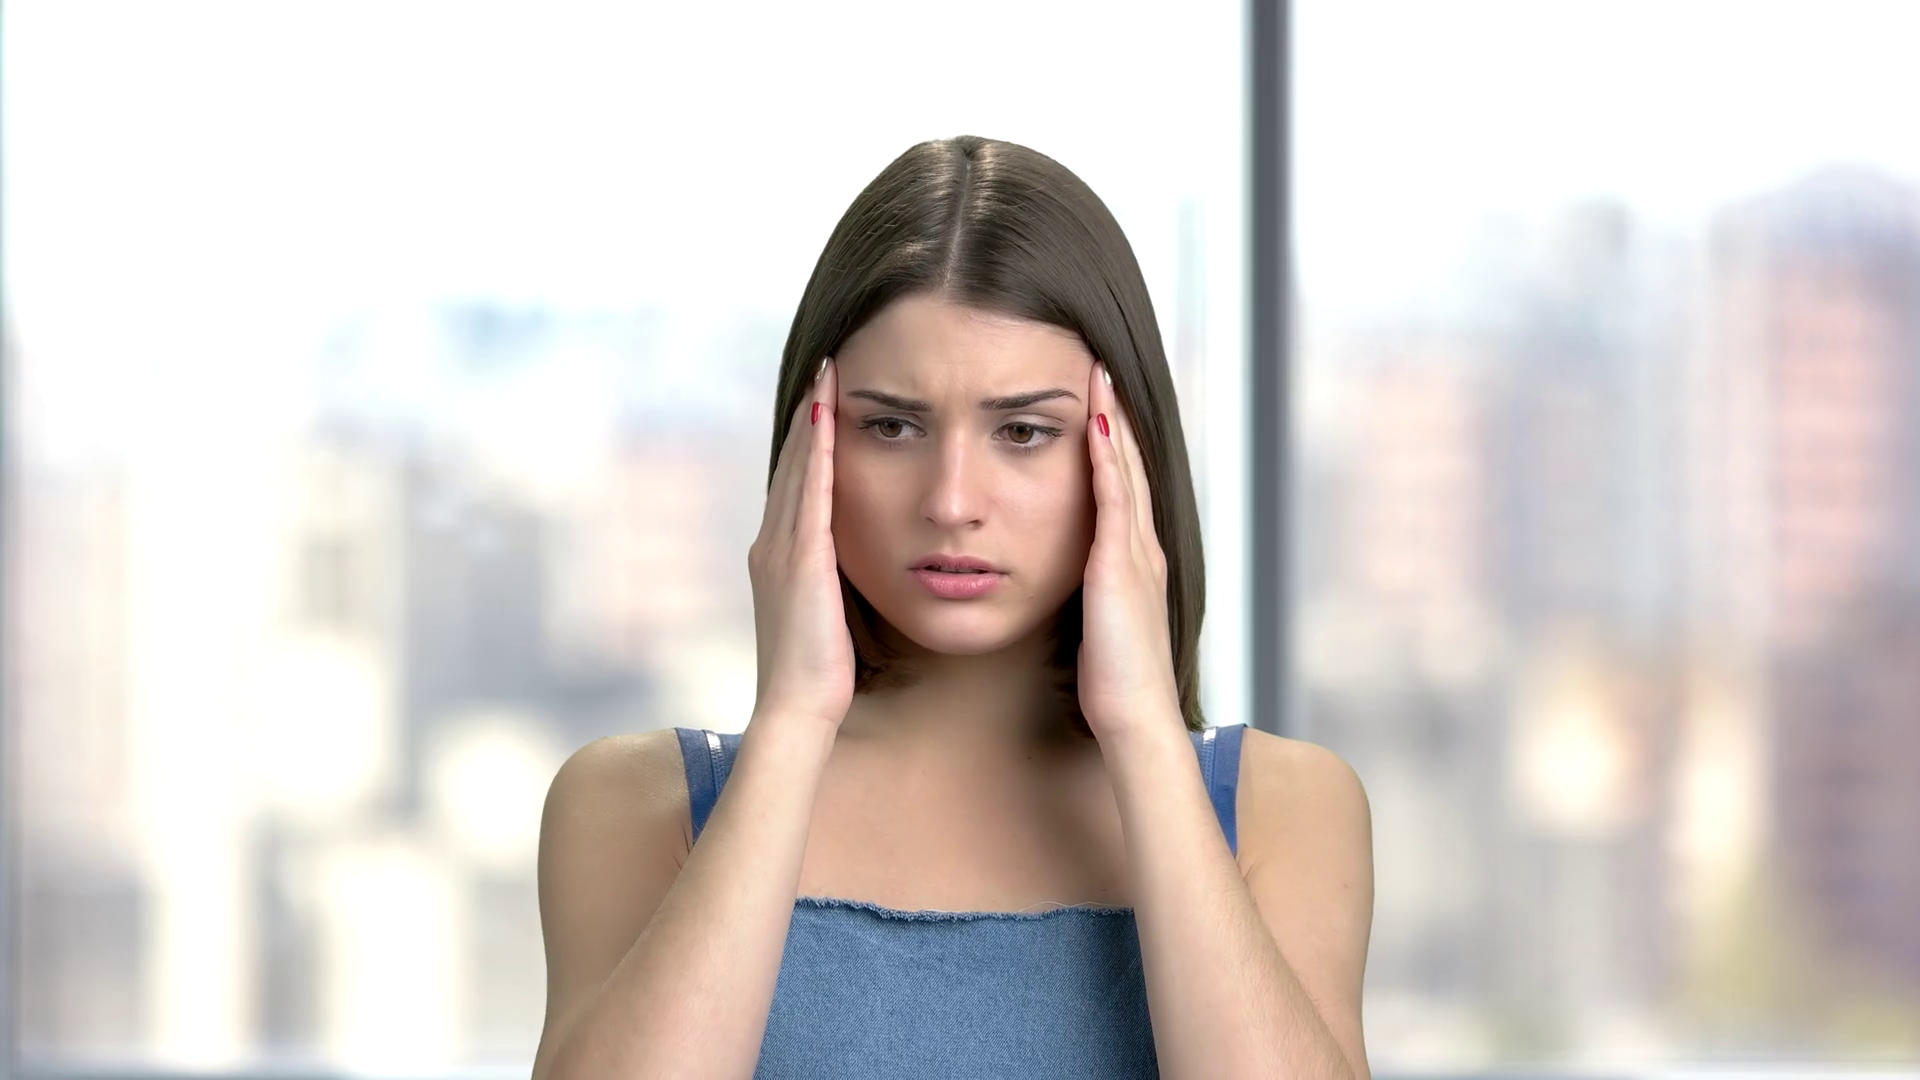 Young Pretty Lady With Terrible Headache Depressed Girl With Migraine Indoor Portrait Stress And Depression Concept Stock Video Footage Storyblocks